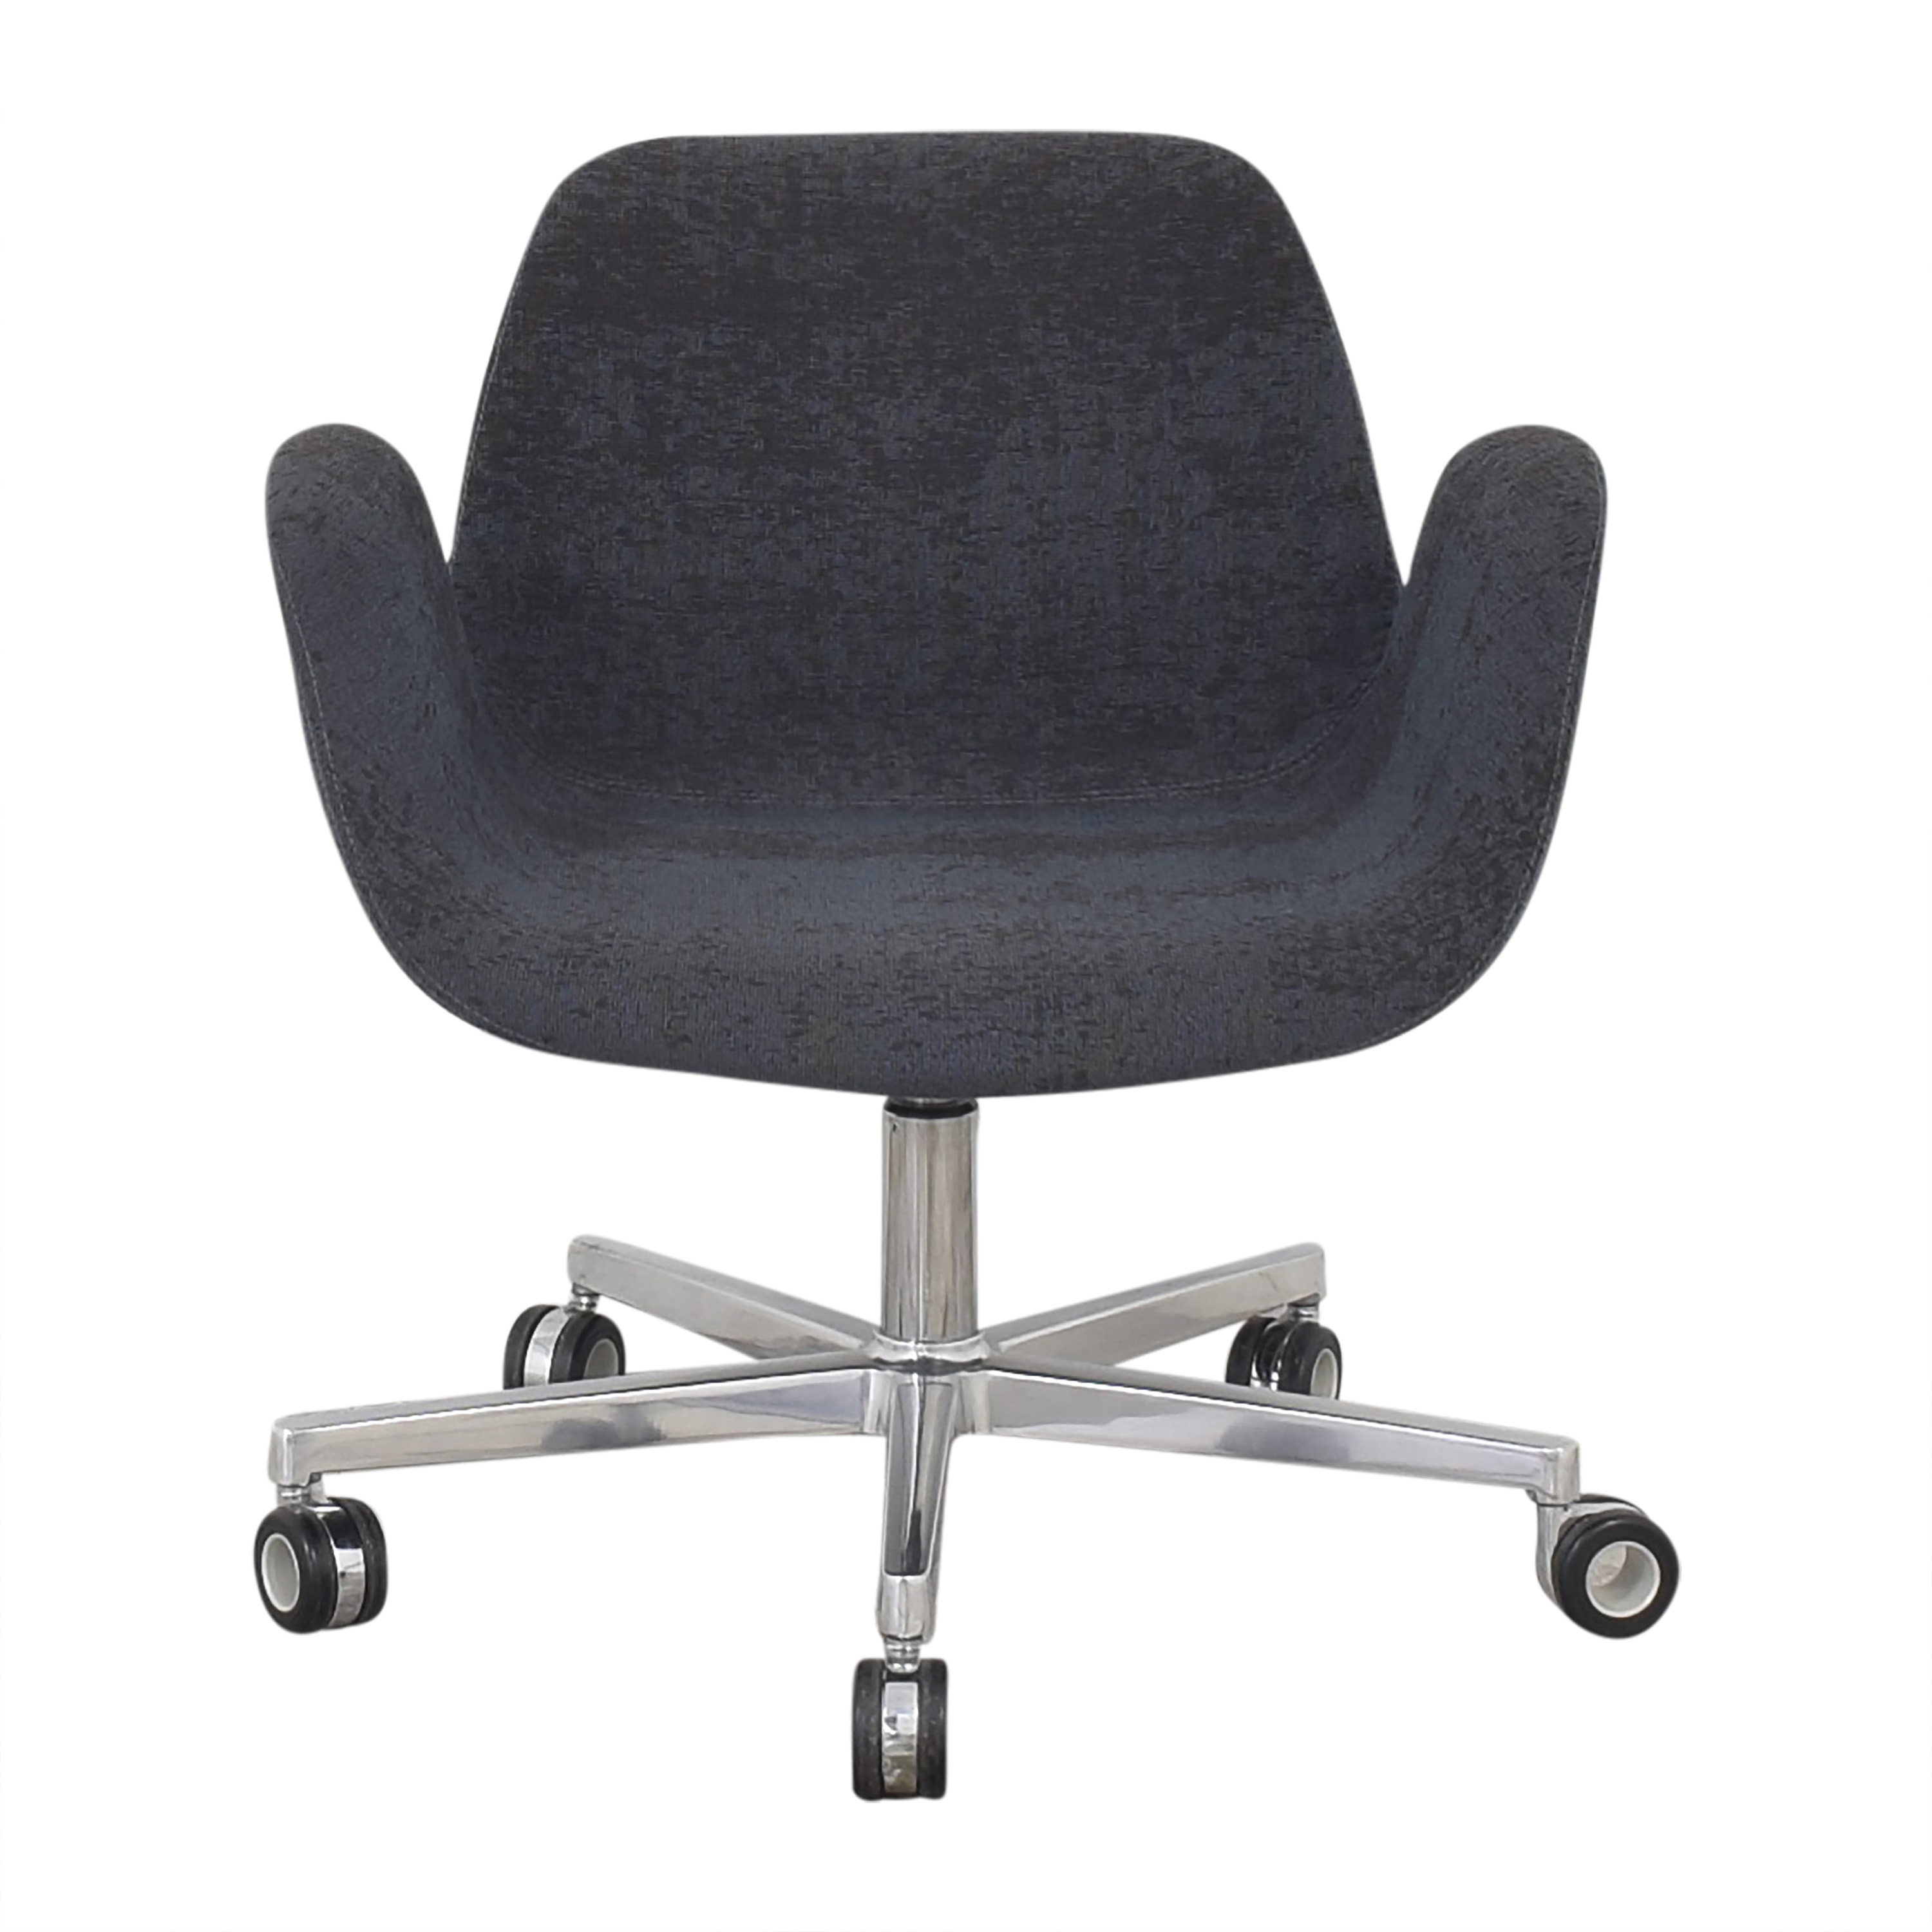 Koleksiyon Koleksiyon Halia Operator Chair on sale